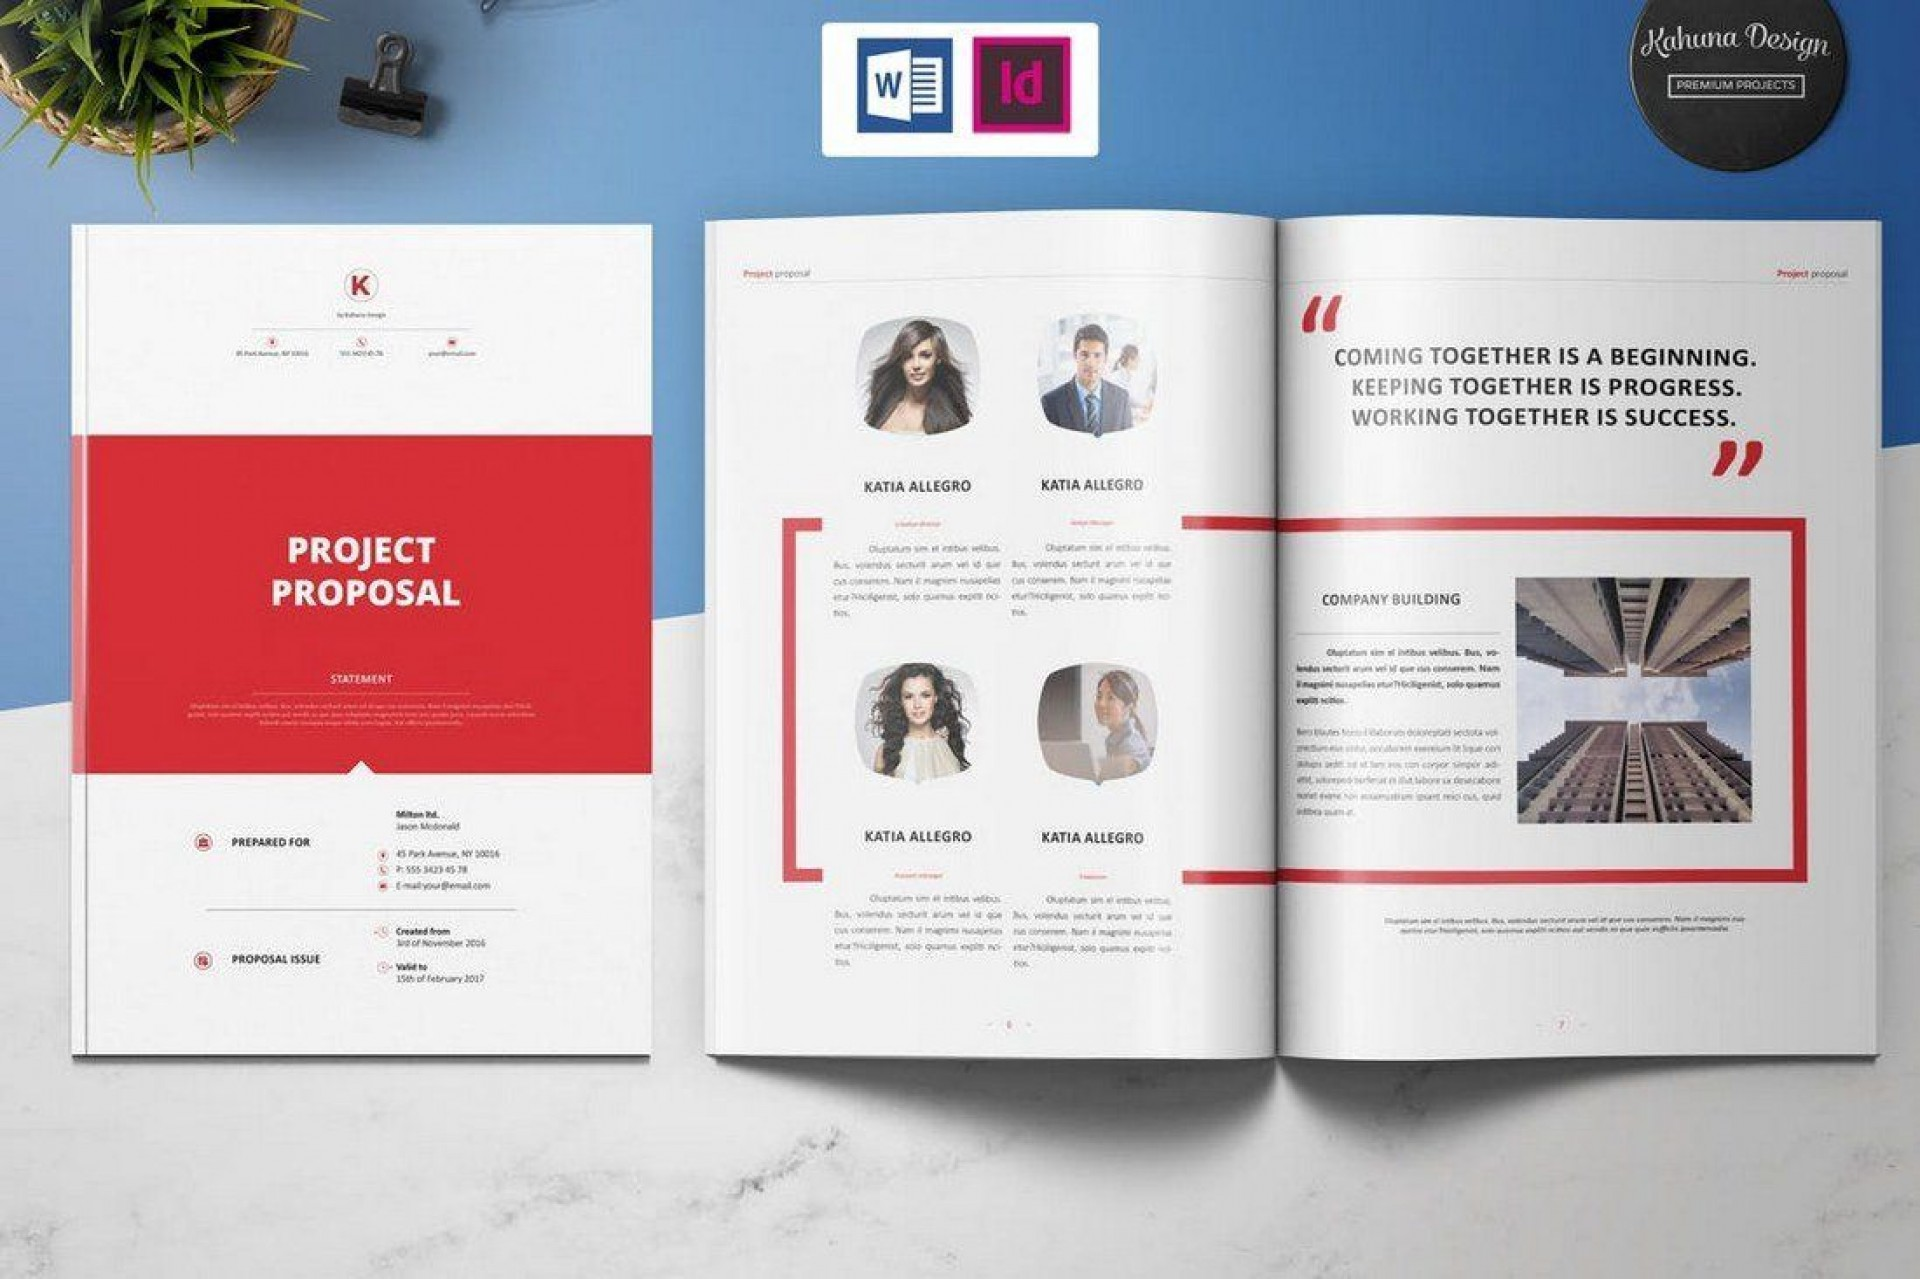 008 Formidable Microsoft Word Design Template Concept  Templates Brochure Free M1920